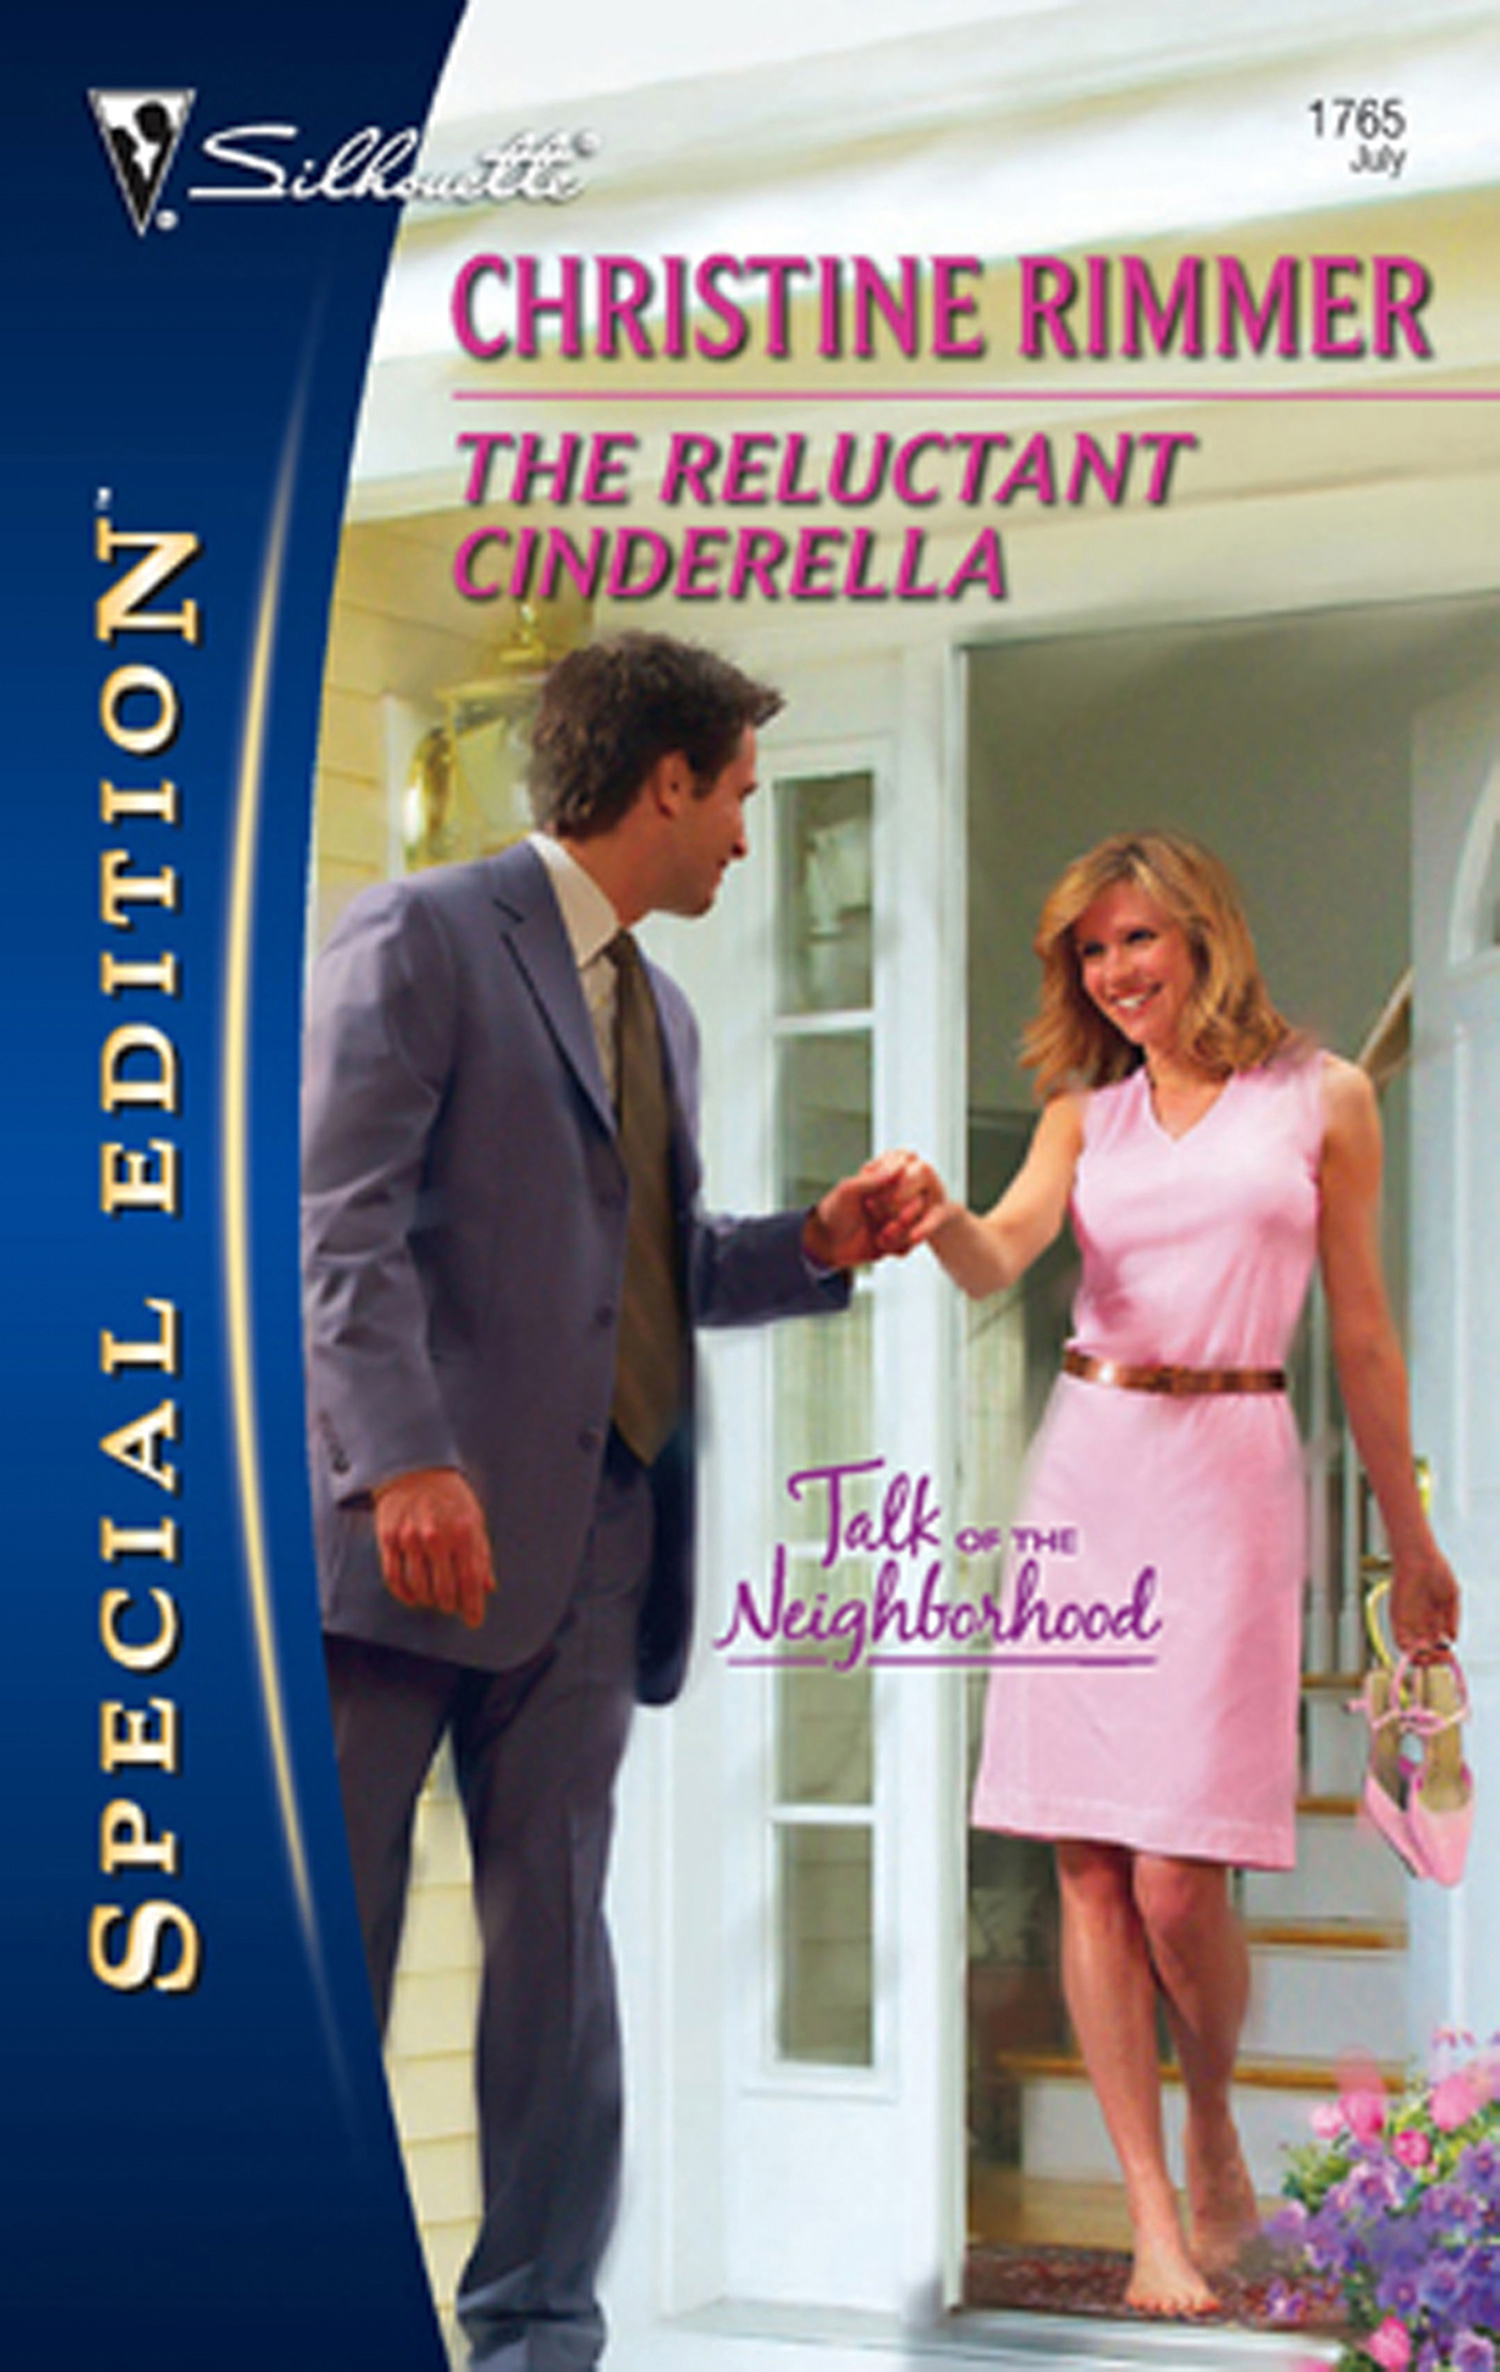 The Reluctant Cinderella